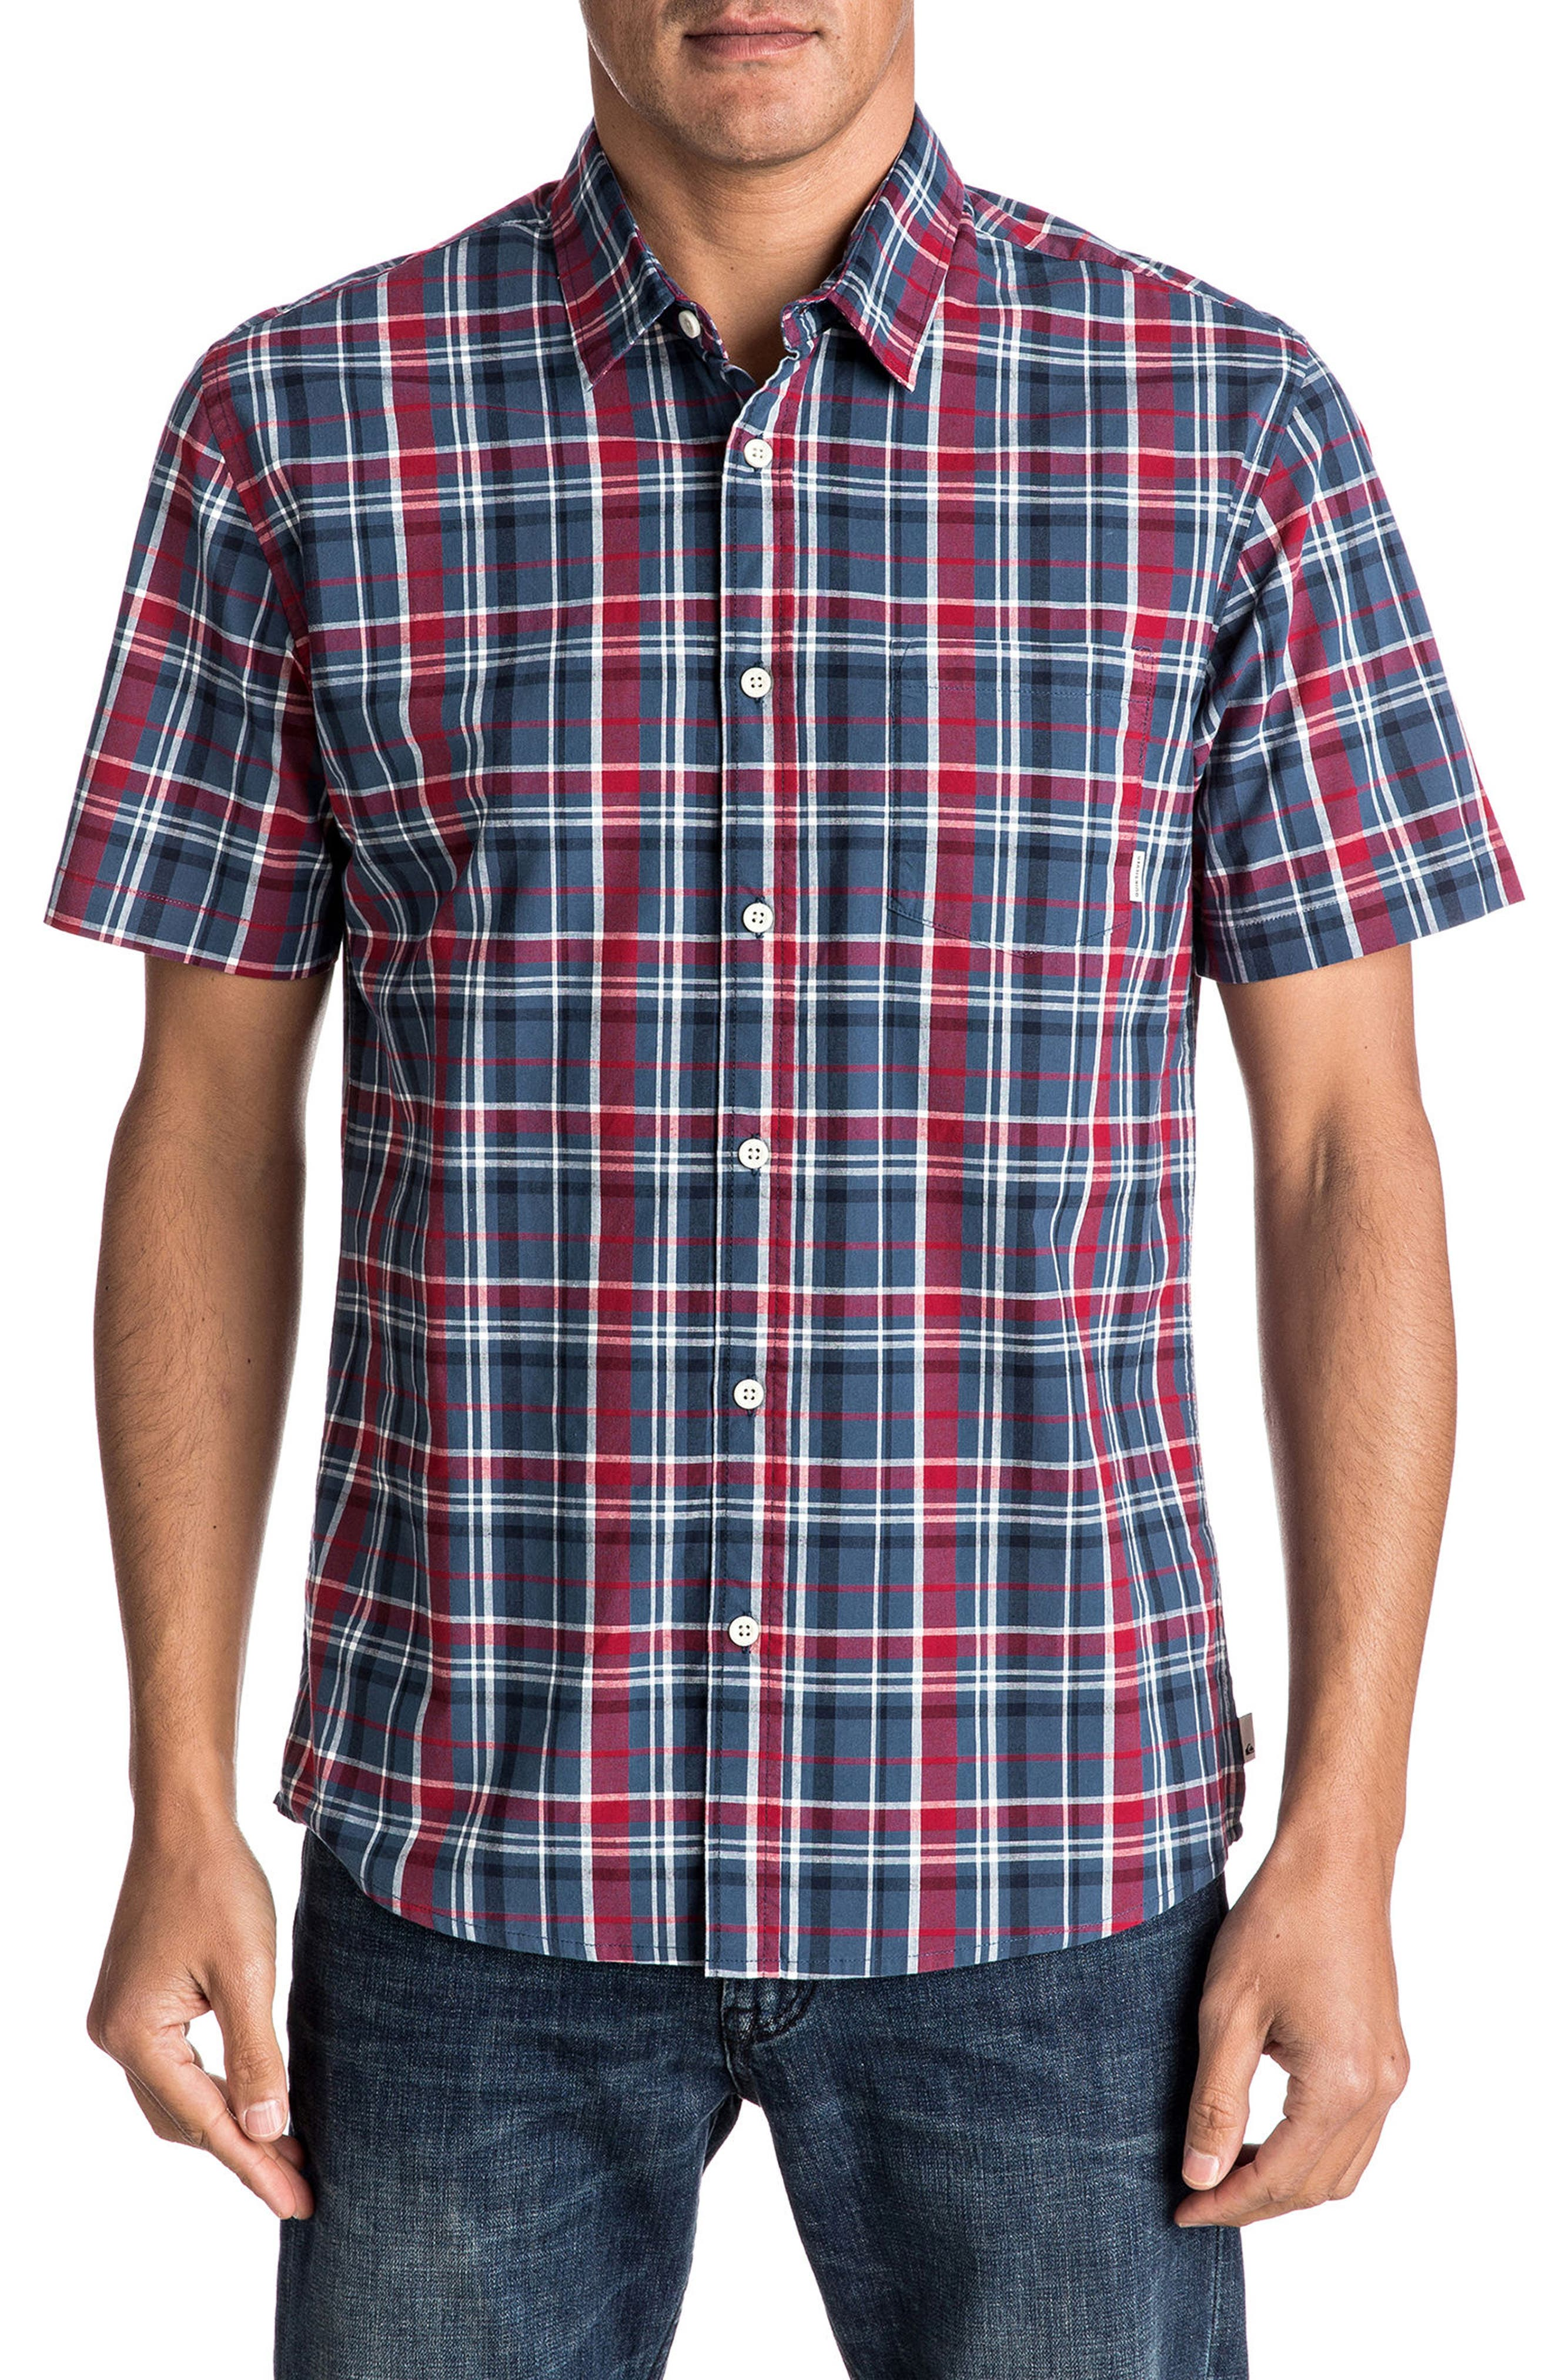 Quiksilver Everyday Check Woven Shirt